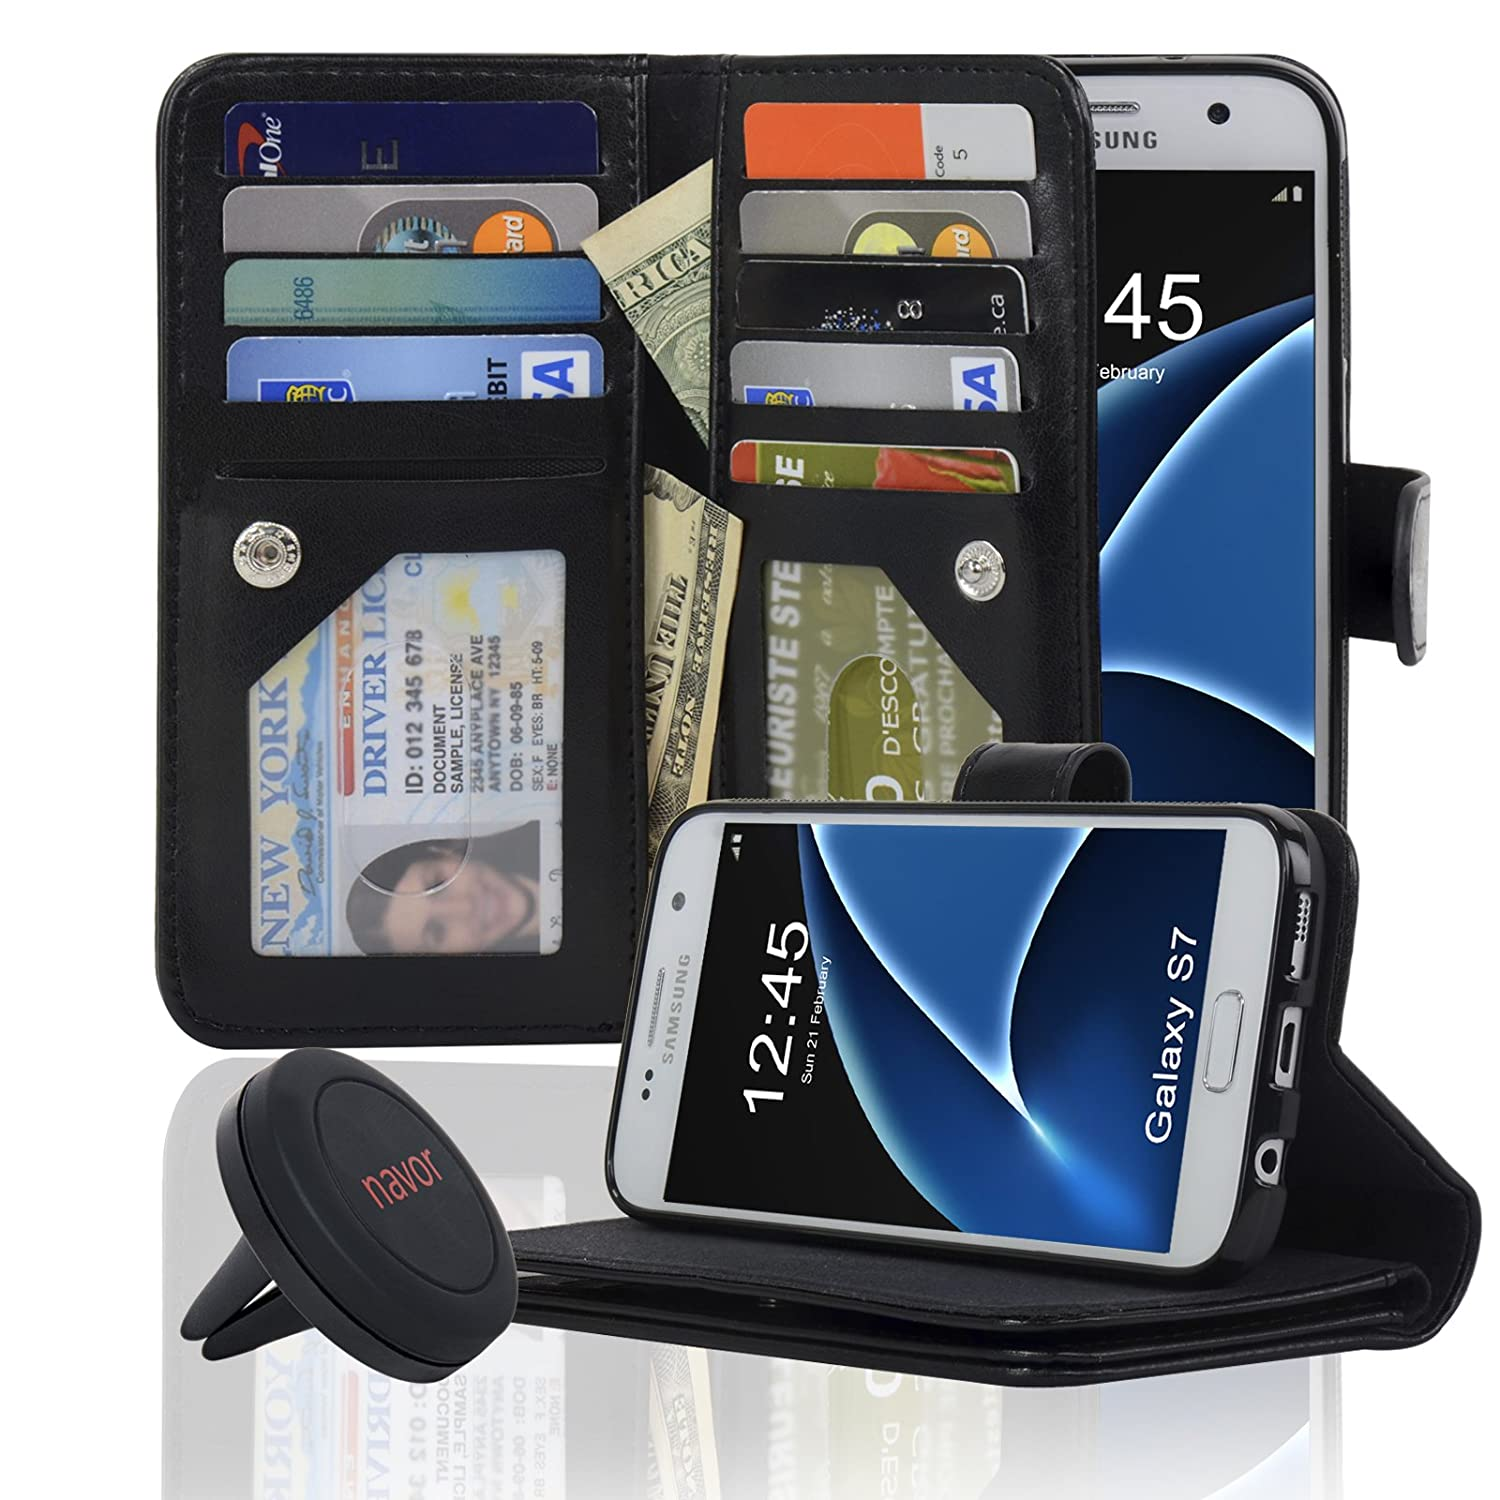 Navor JOOT3 Series Samsung Galaxy S7 Wallet Case with Detachable Magnetic Cover - Black (S7O3LBK)